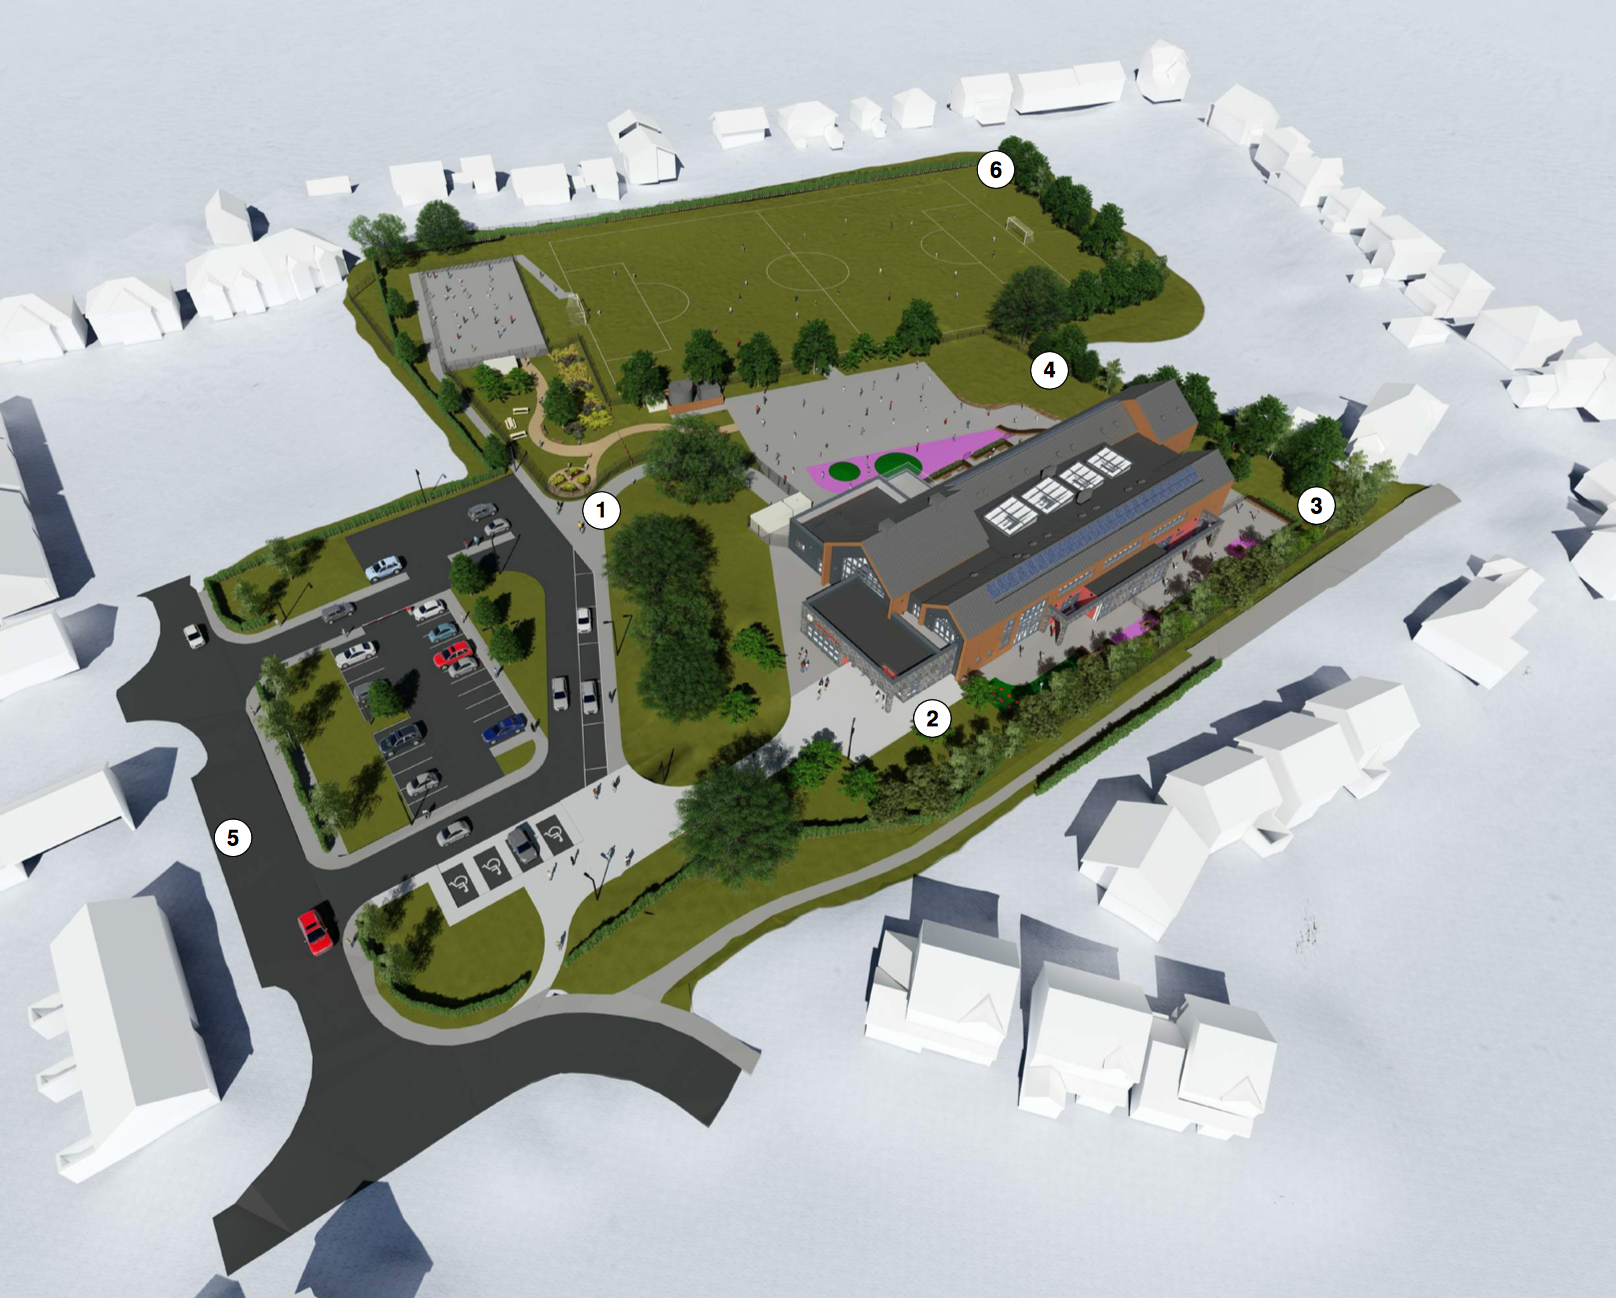 An overview of the site with Abbotsford Drive on the bottom-right and Vounog Hill at the top